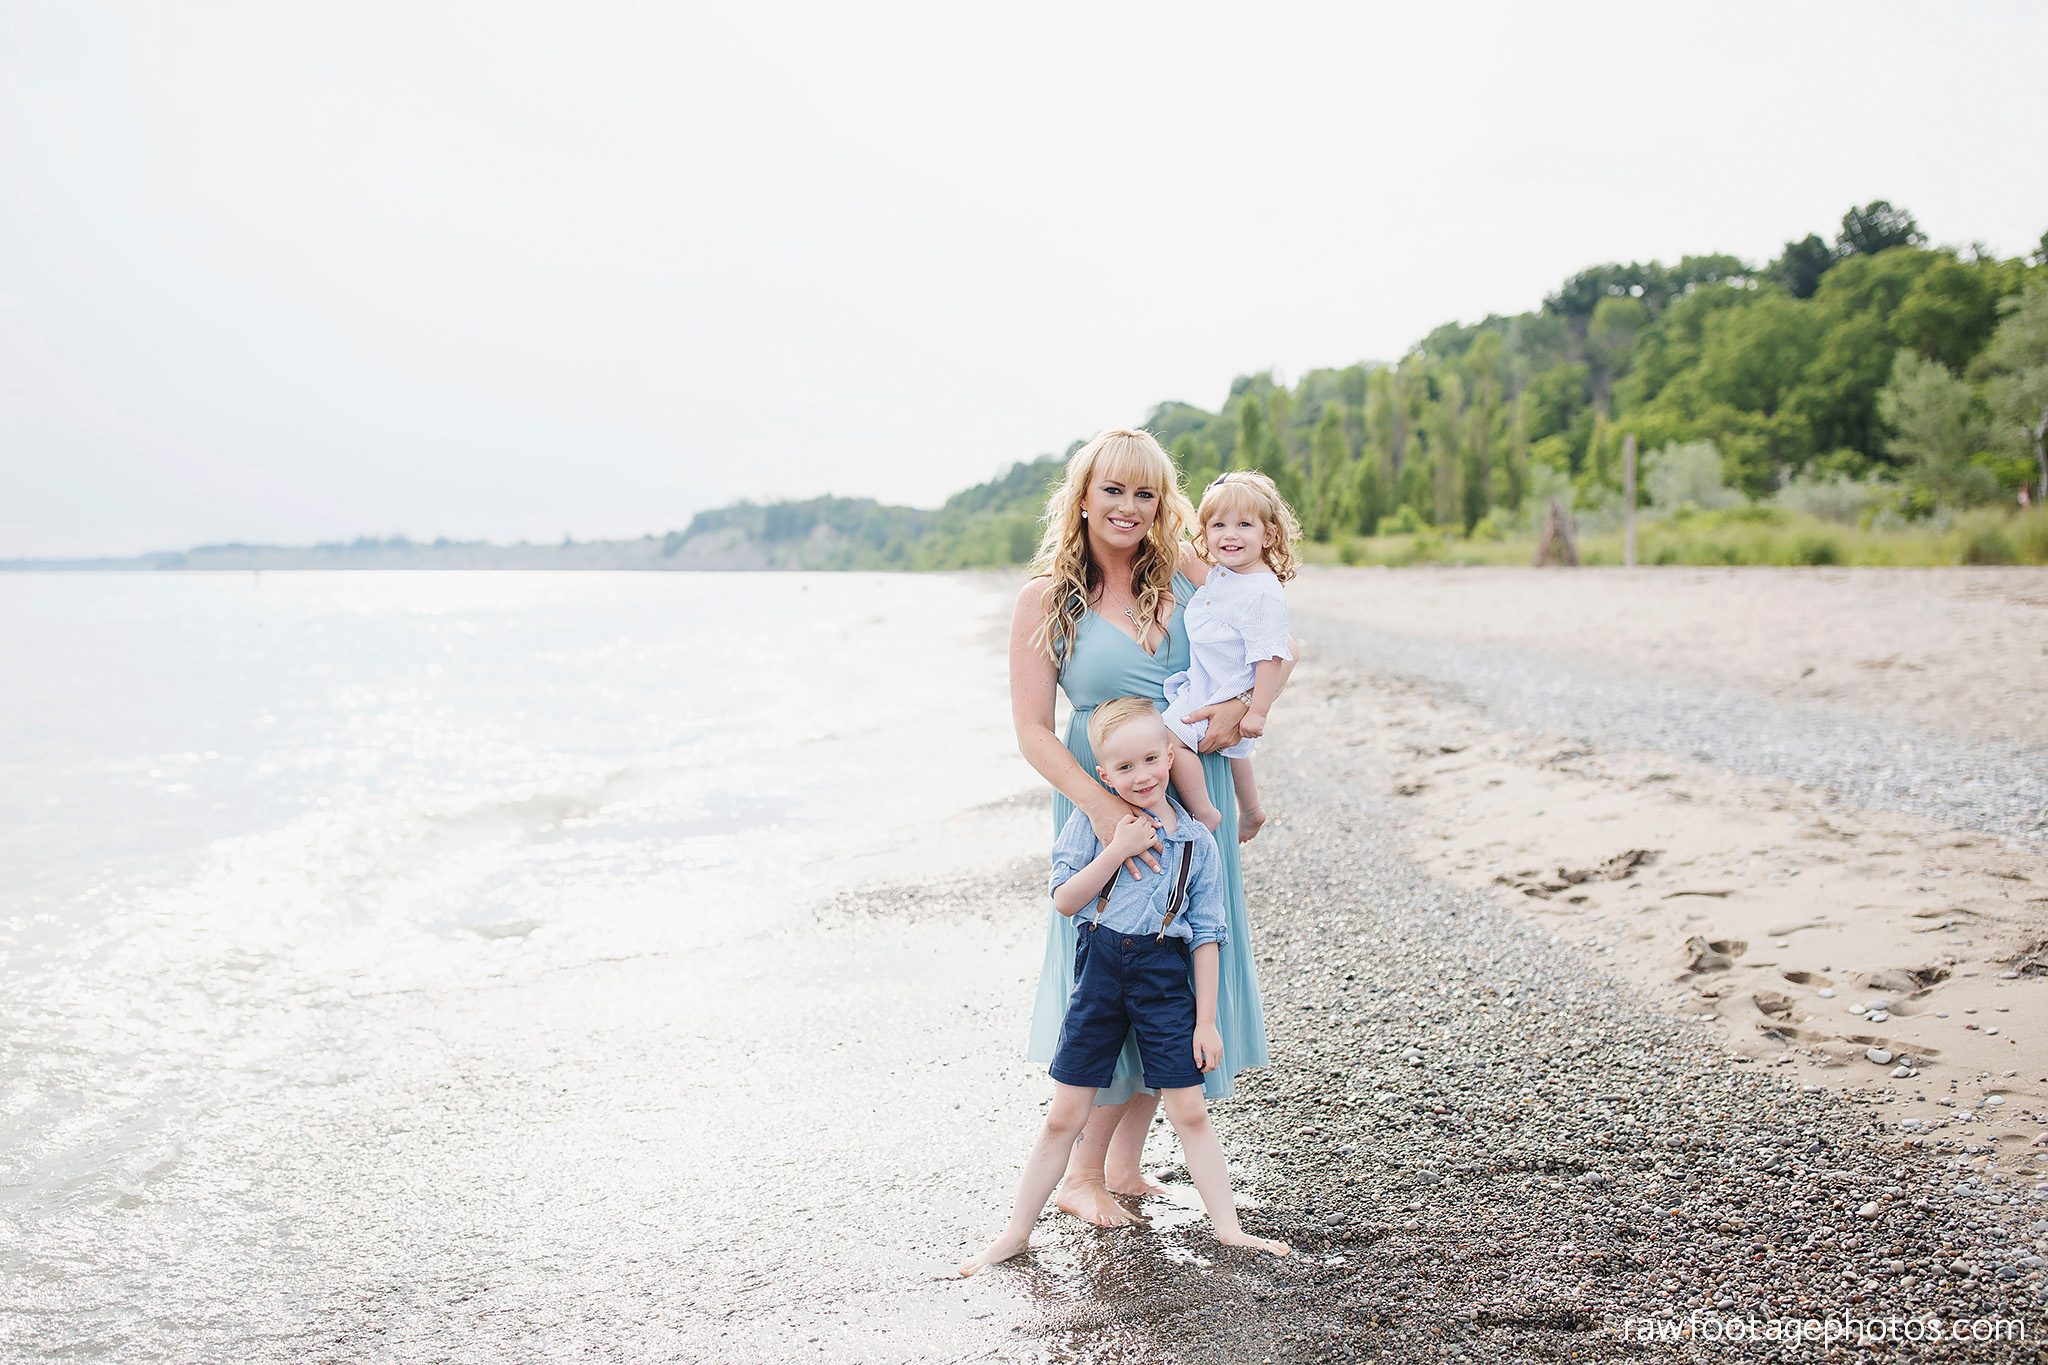 london_ontario_family_photographer-beach_minis-port_stanley_beach-raw_footage_photography017.jpg